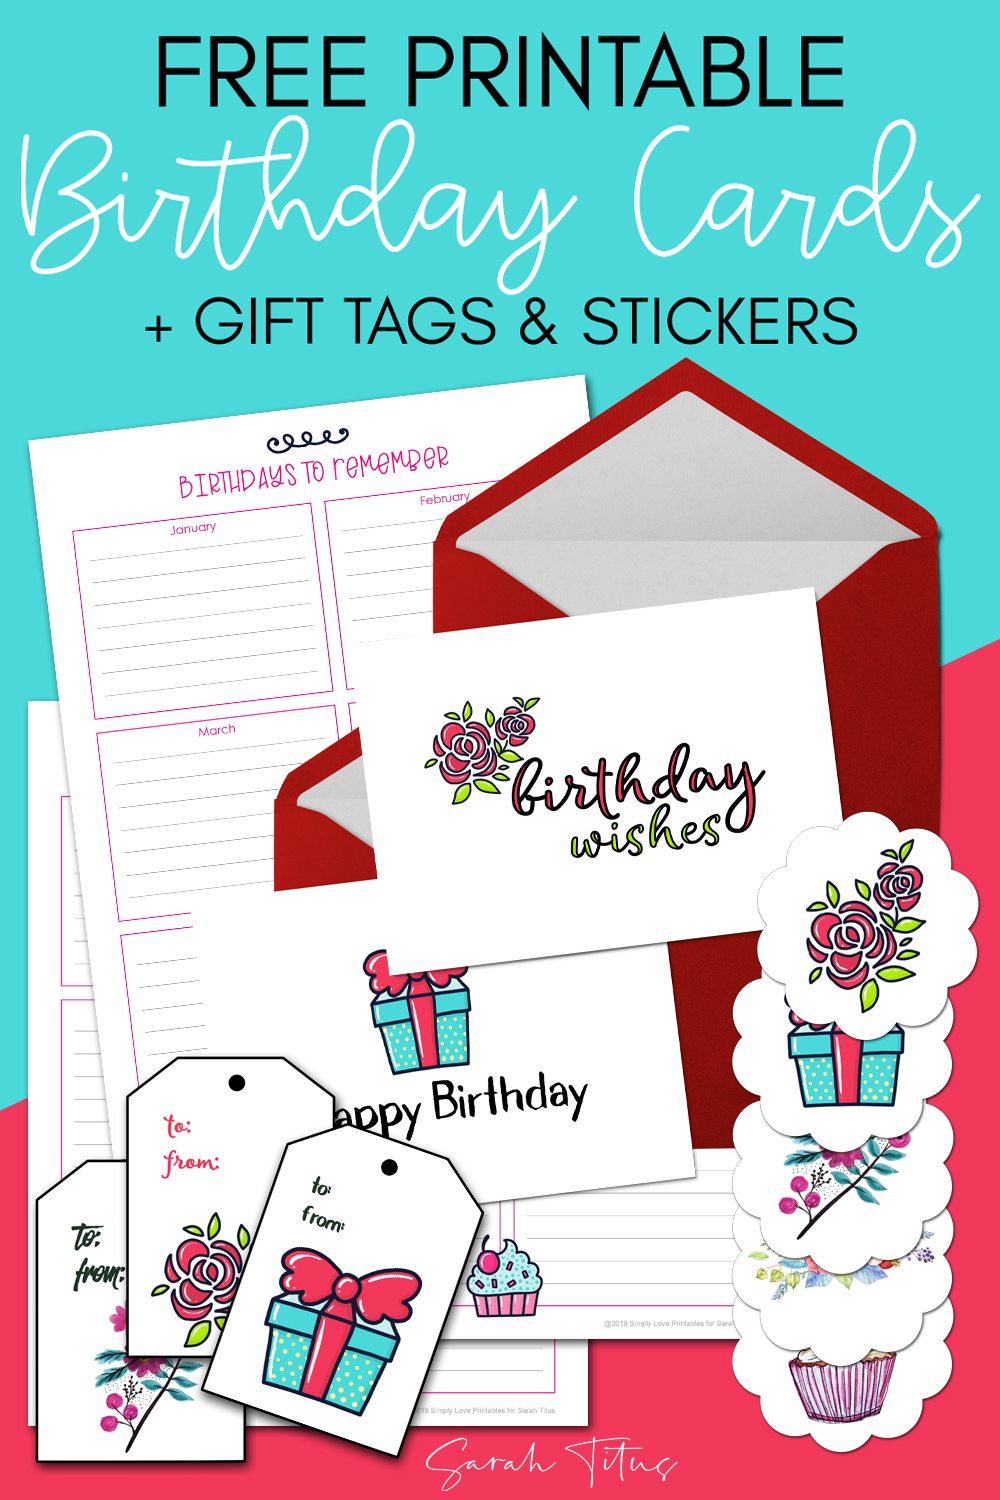 photo regarding Gift Tag Printable Free referred to as Cost-free Printable Birthday Playing cards + Reward Tags Stickers - Sarah